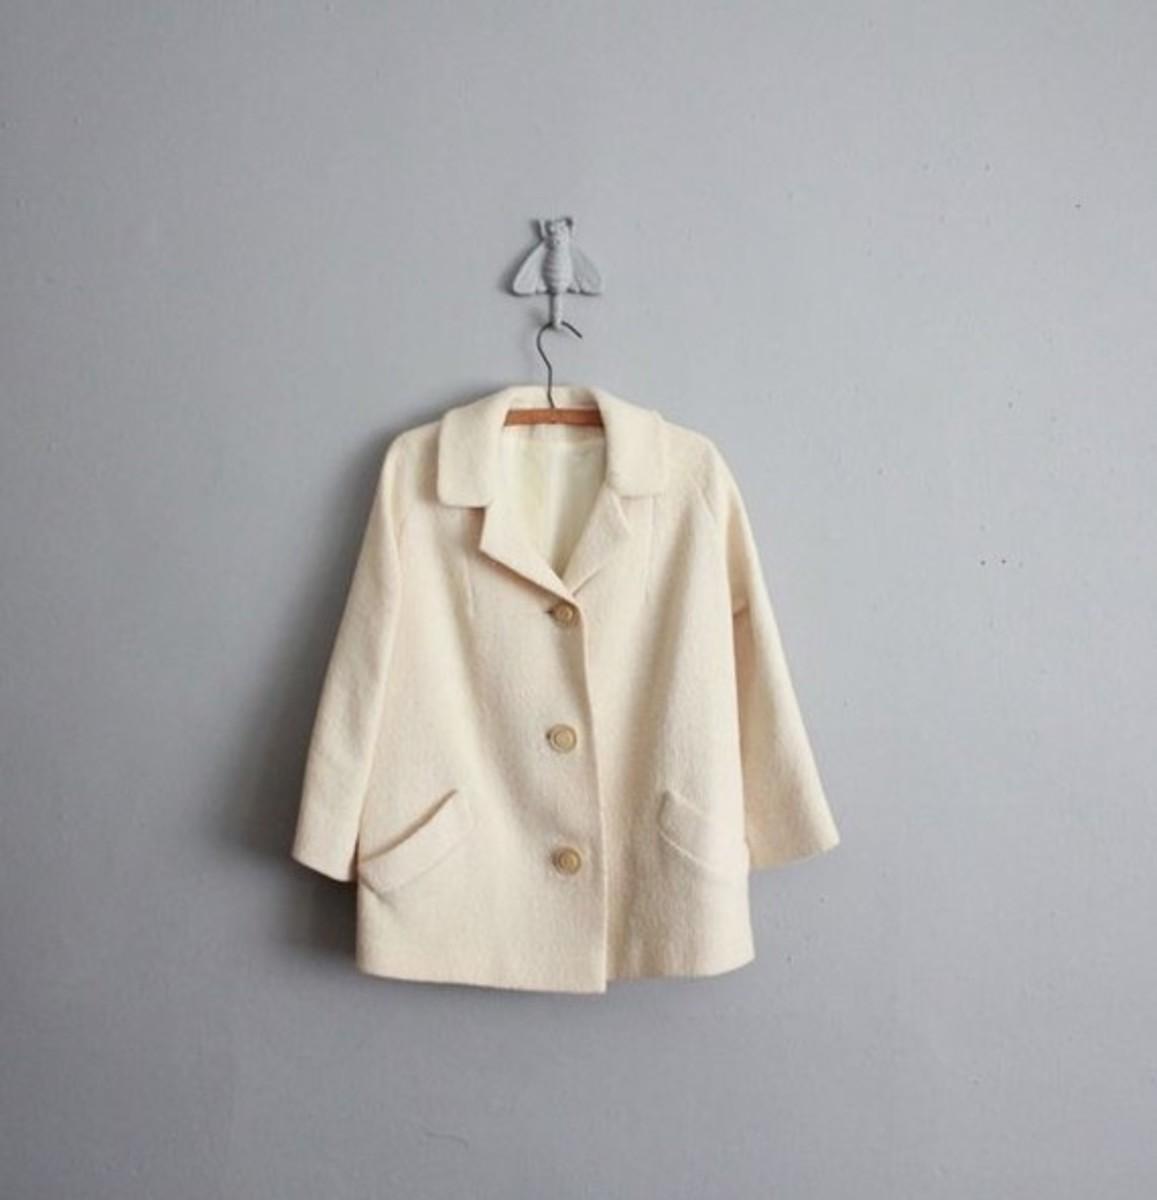 Vintage Vanilla Coat for sale by Allen Company Inc on etsy.com